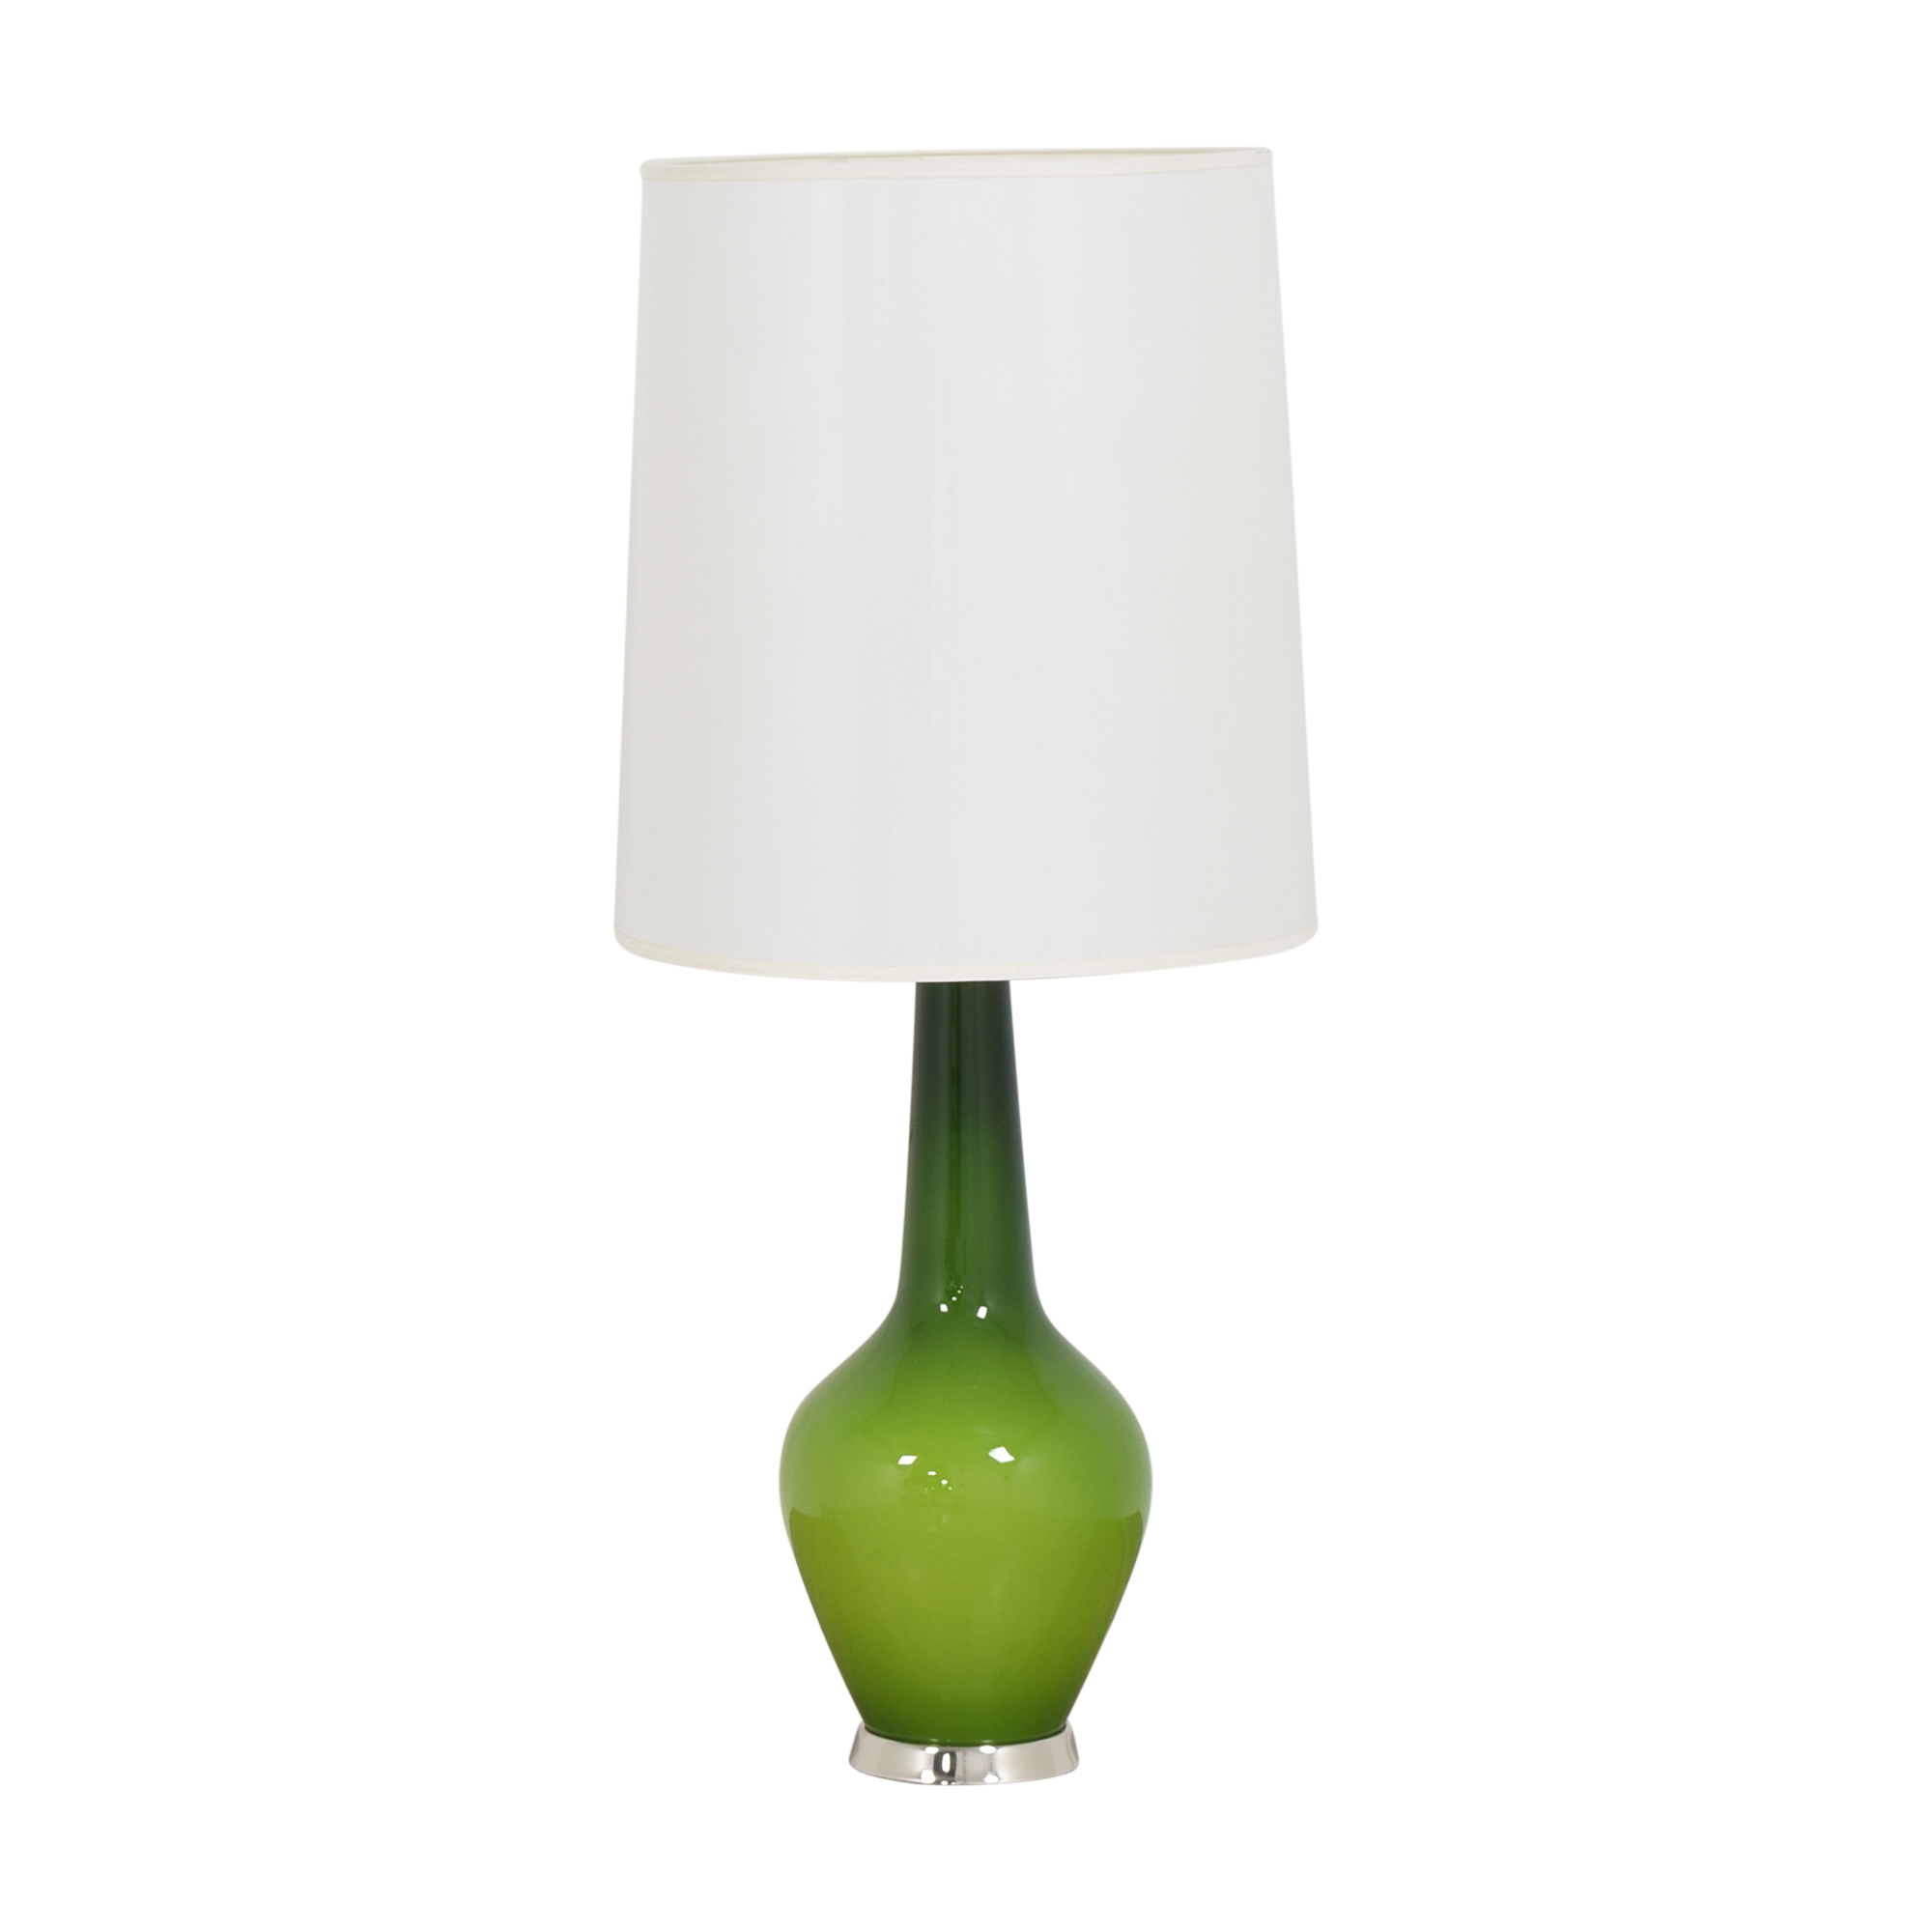 Jonathan Adler Jonathan Adler Capri Bottle Table Lamp ma